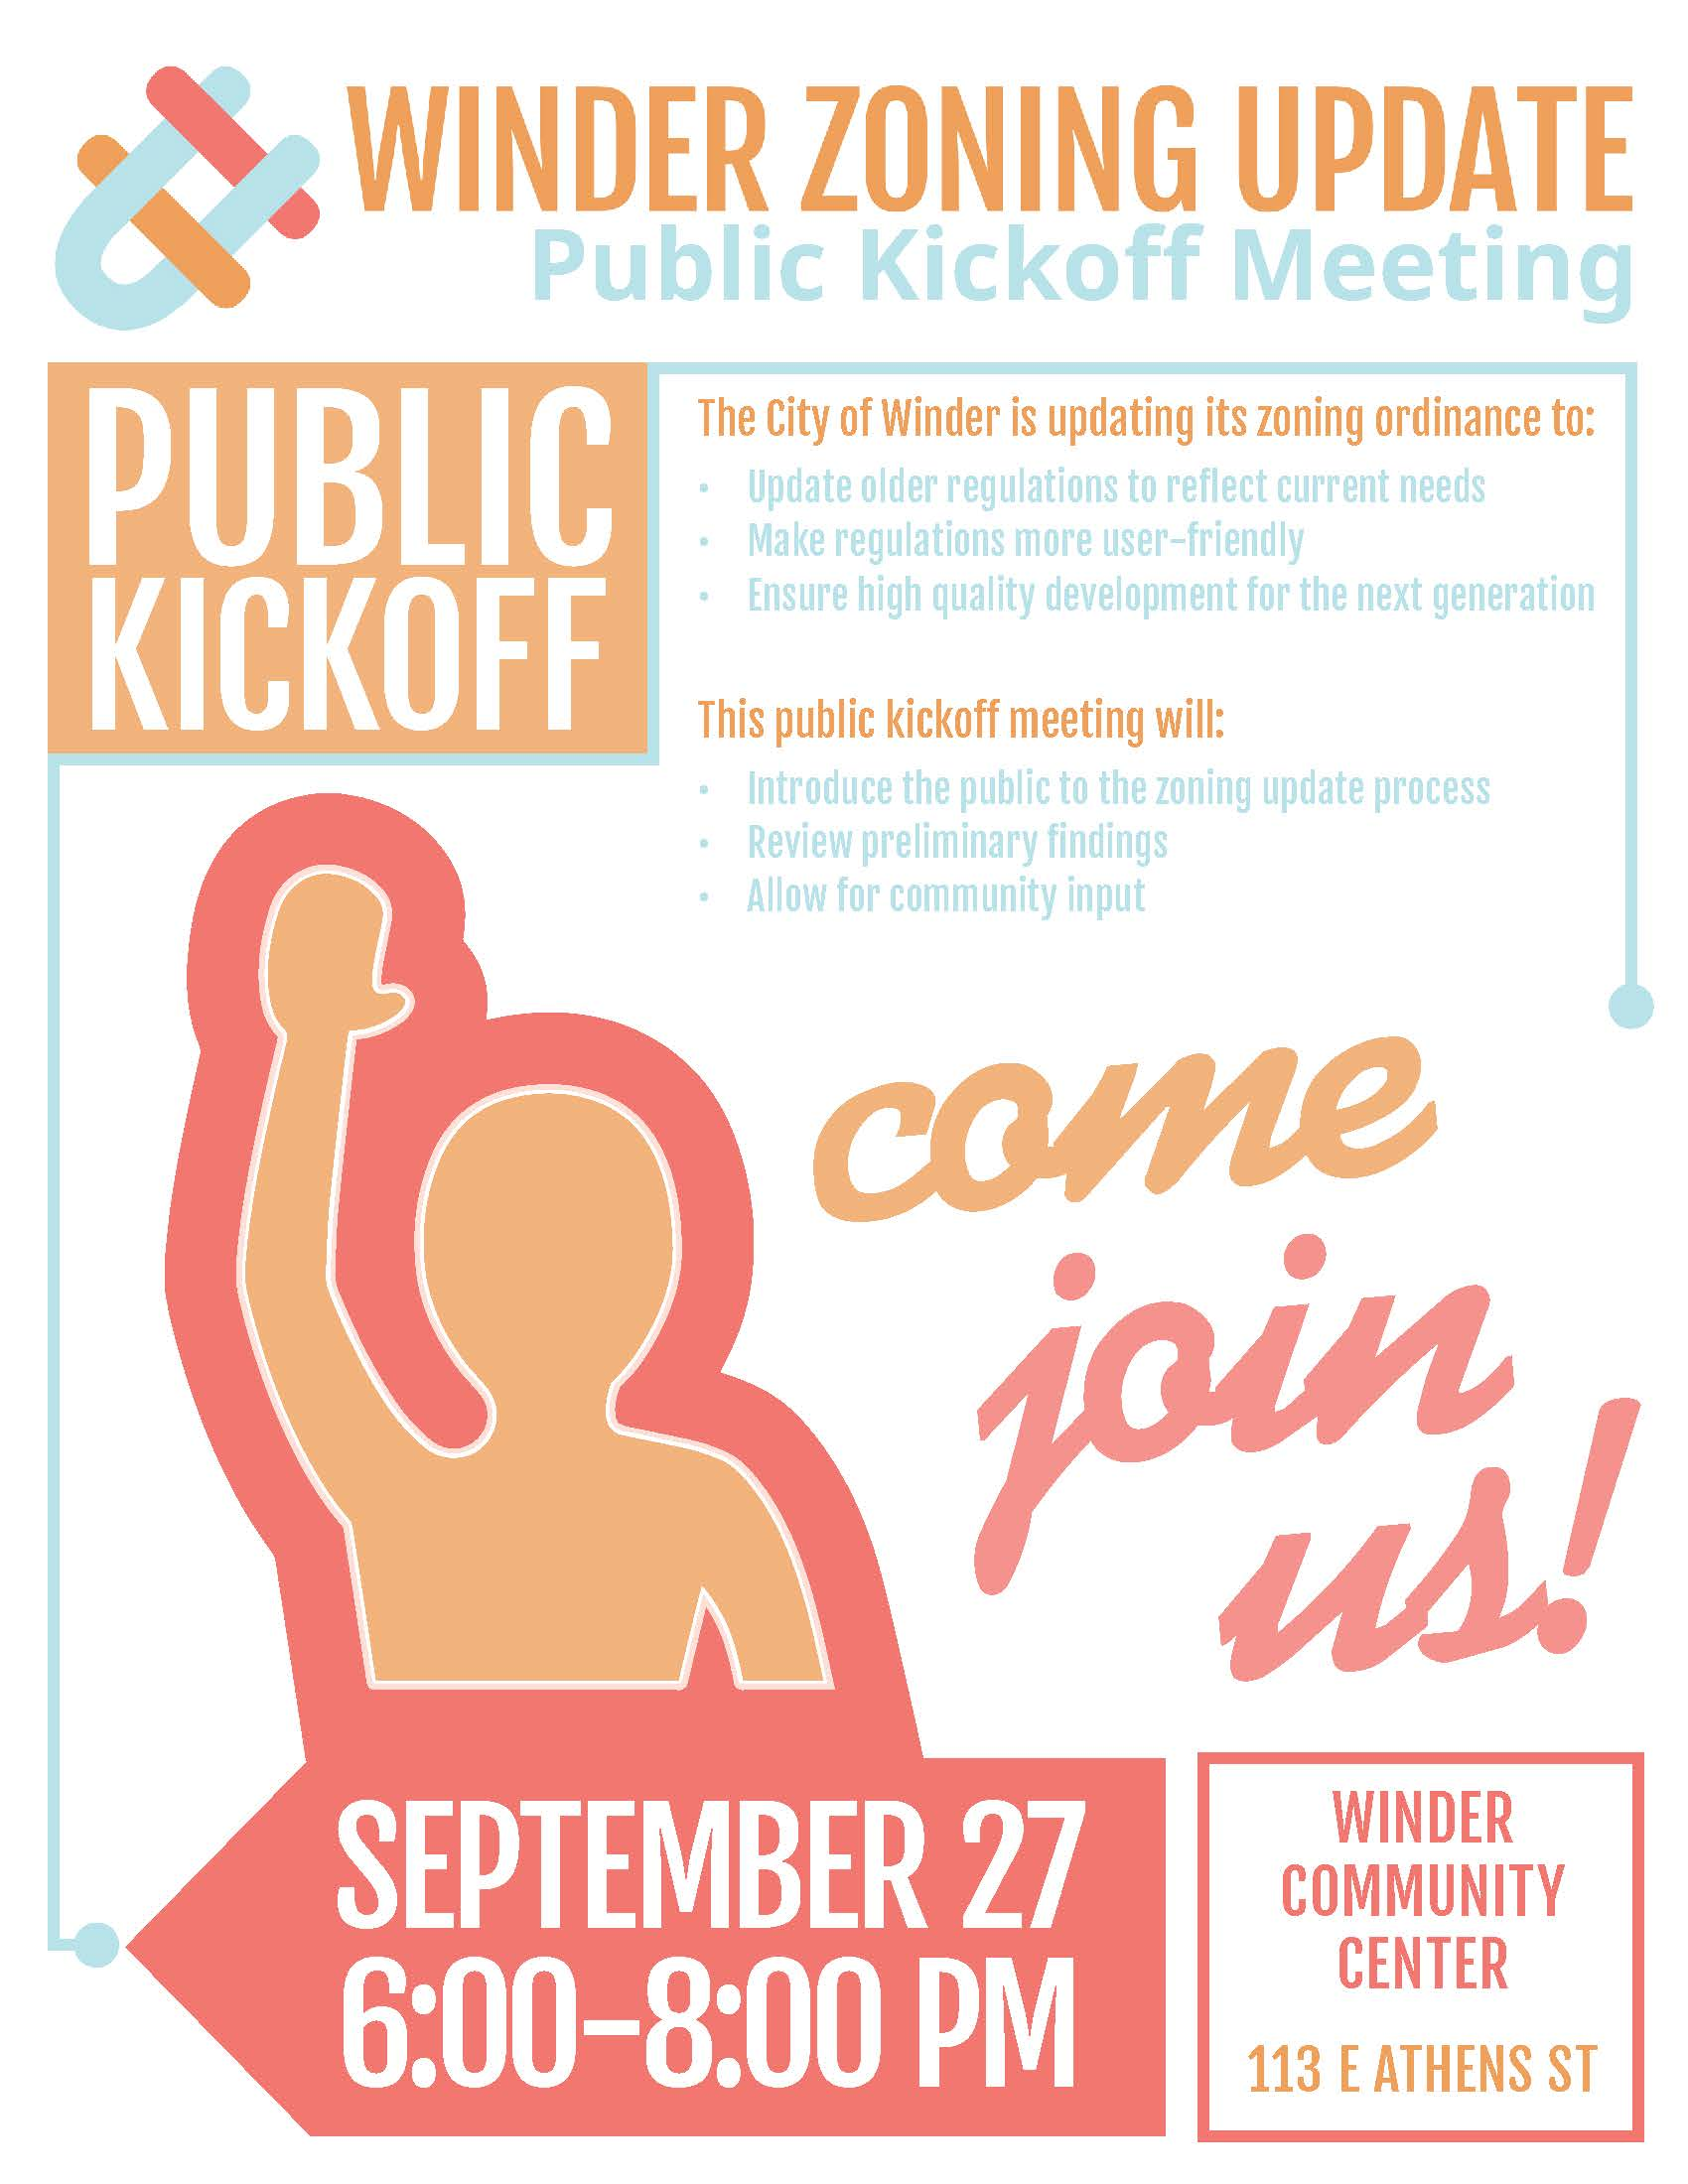 Winder zoning update kickoff meeting flyer 8